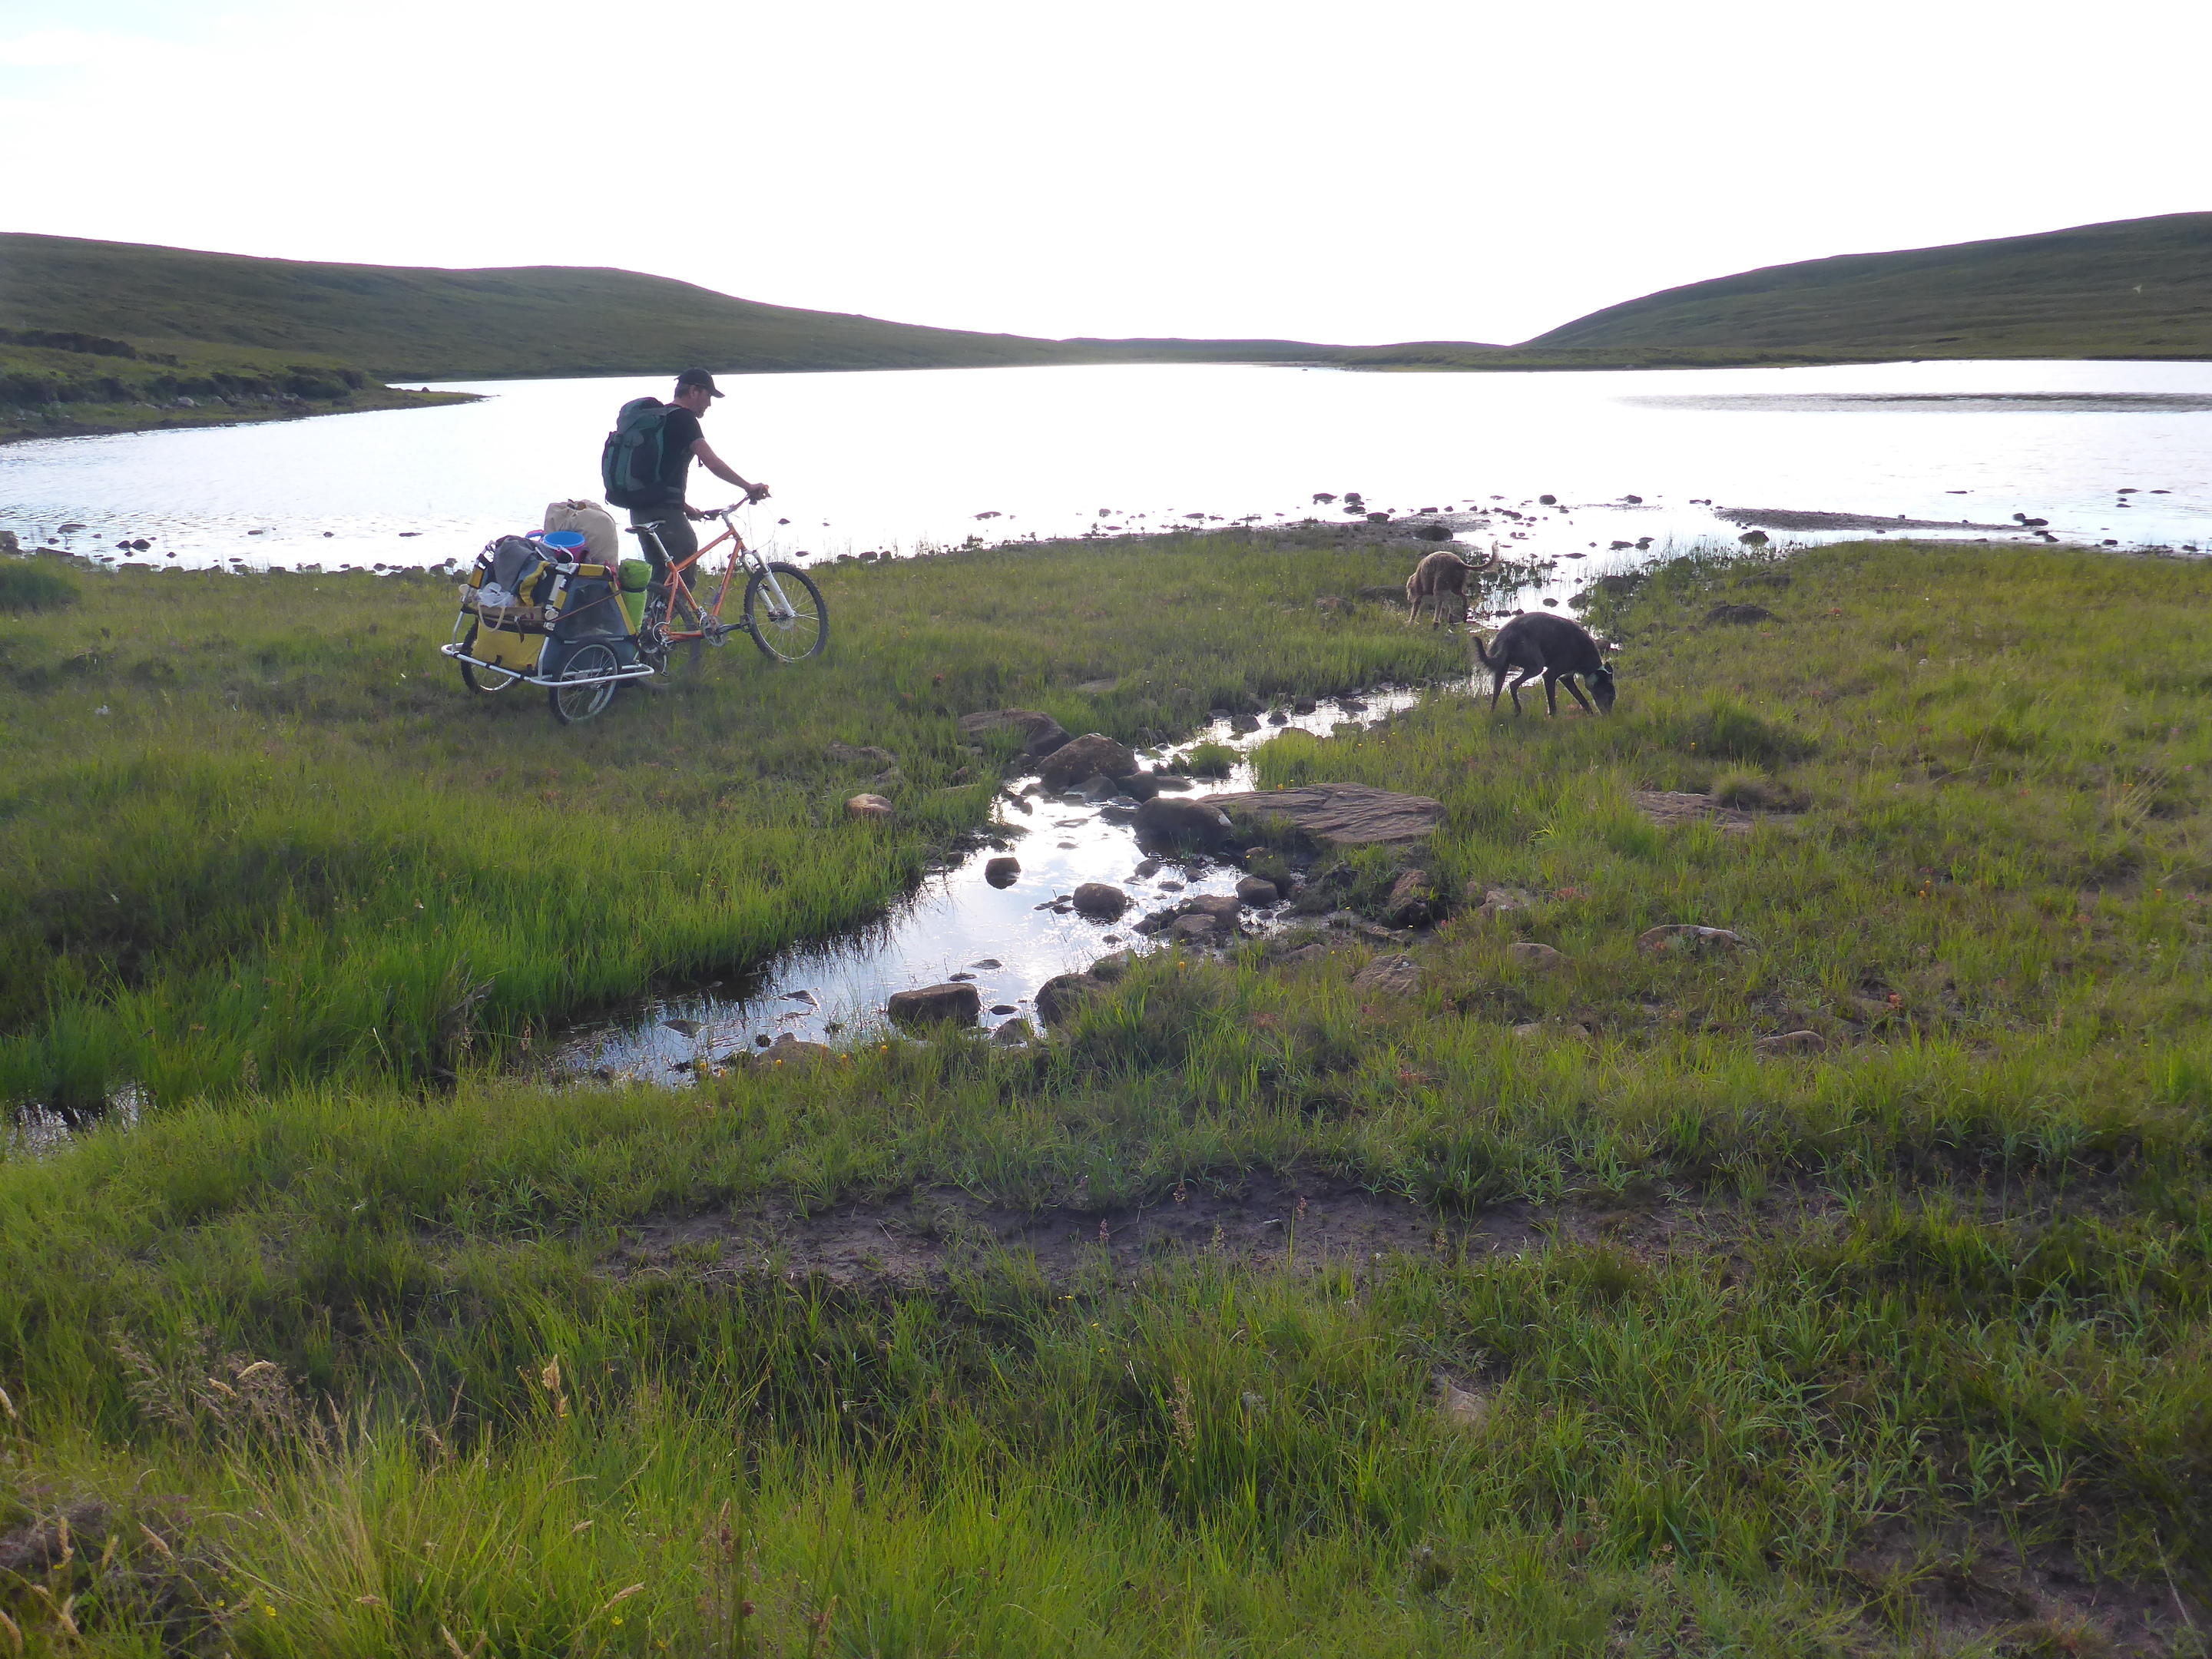 Crossing rivers on a bike is a problem with 35kg of kit in a trailer.